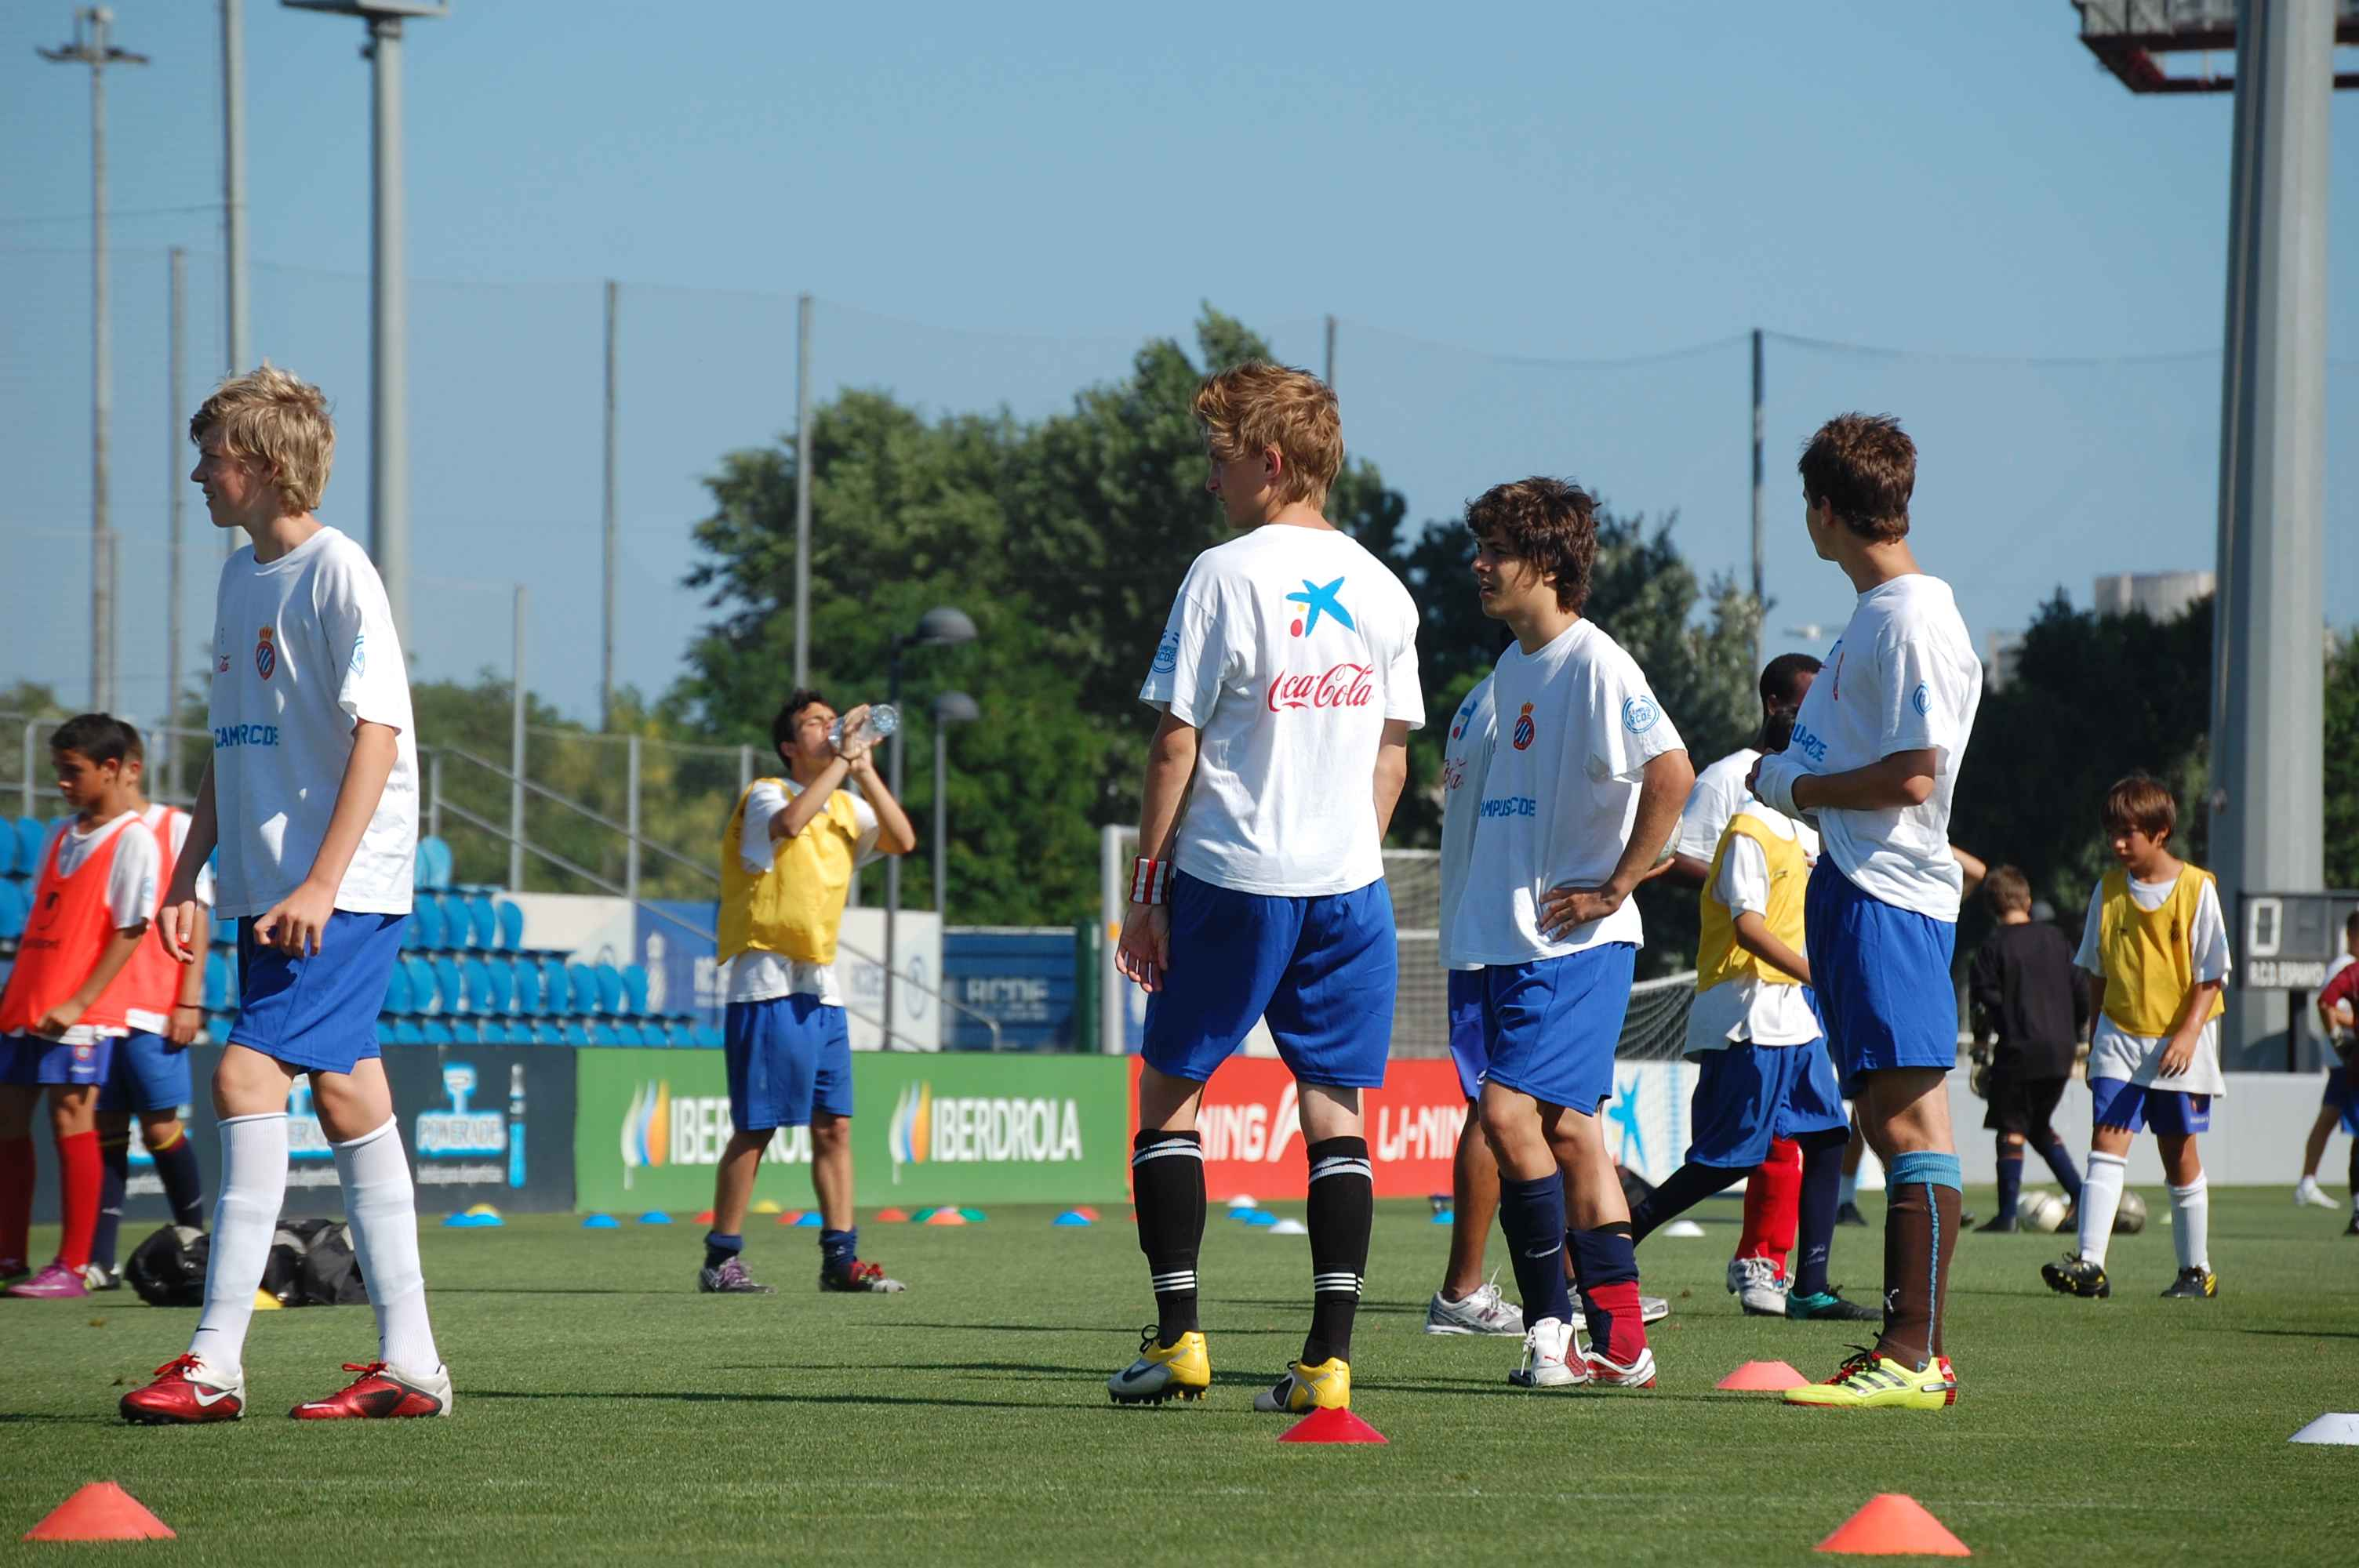 Summer_camp_with_soccer_in_Barcelona